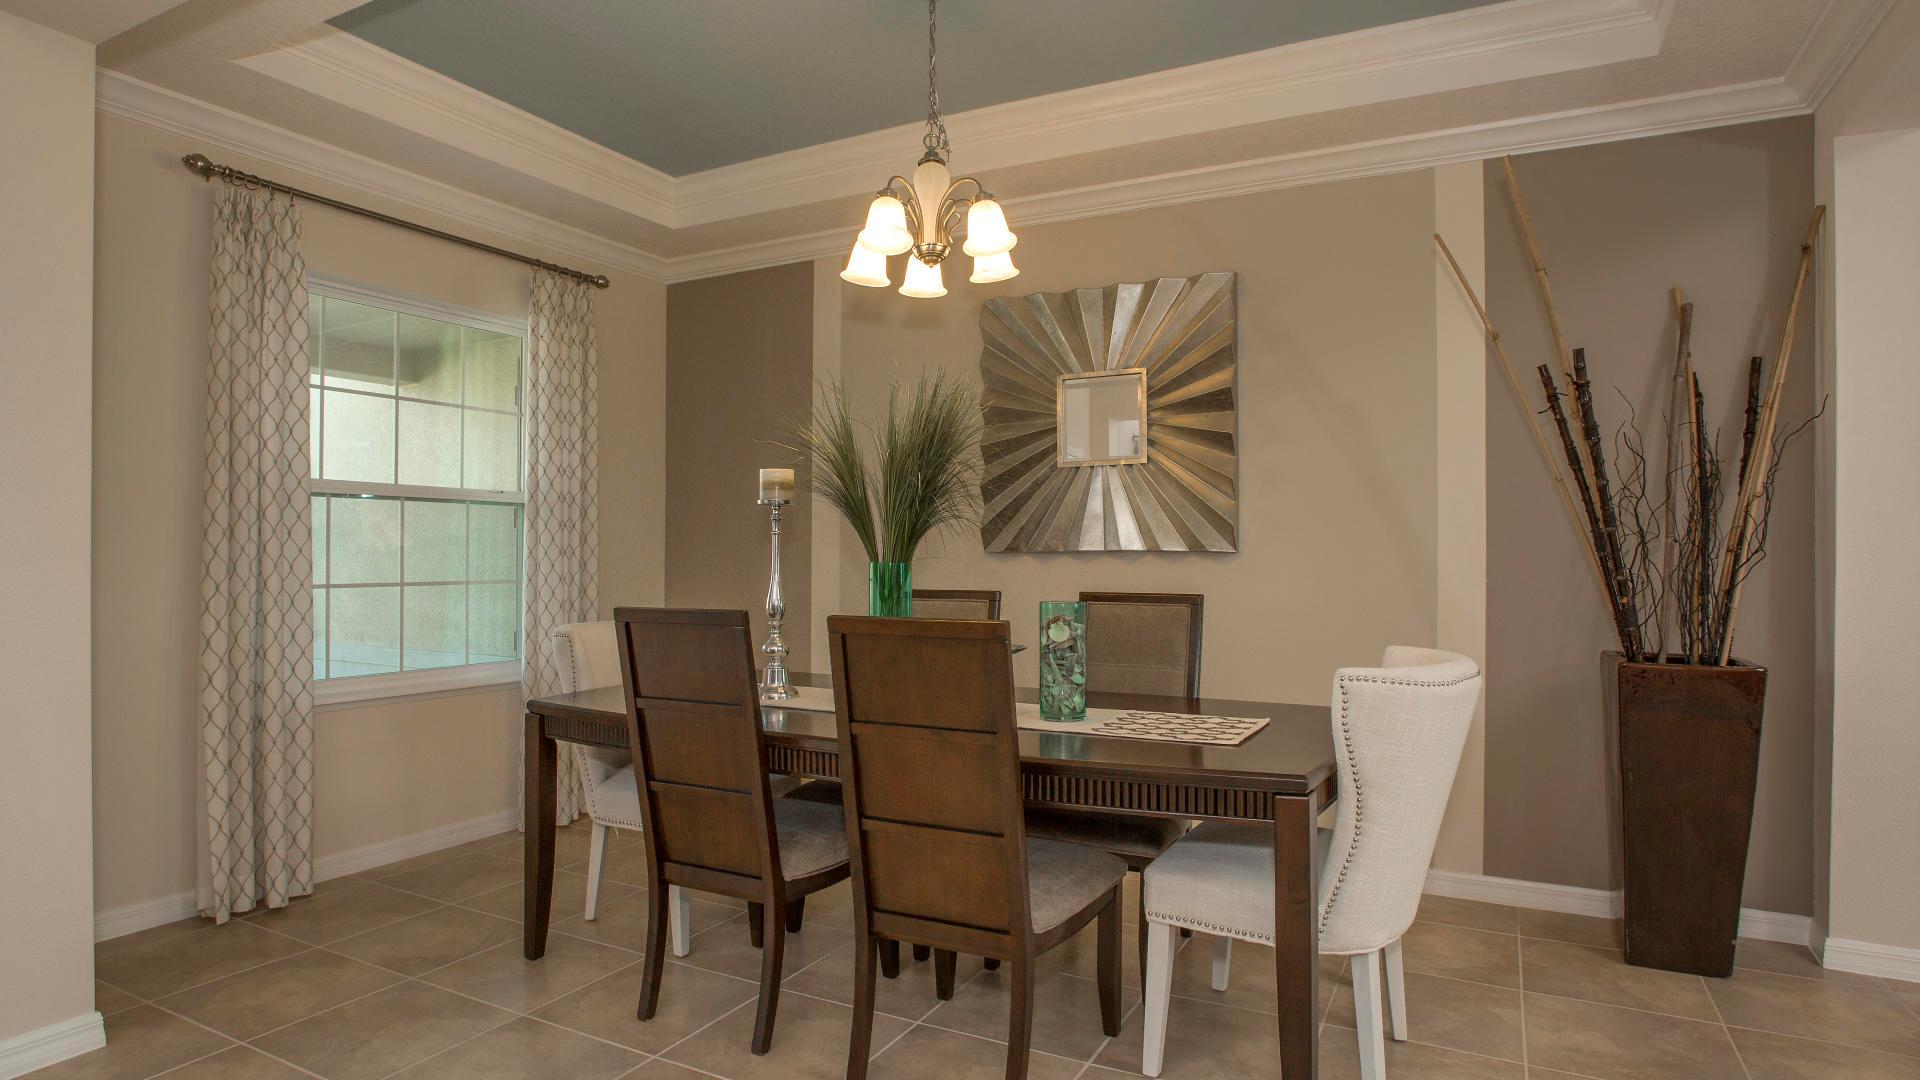 Living Area featured in the Sierra By Maronda Homes in Daytona Beach, FL